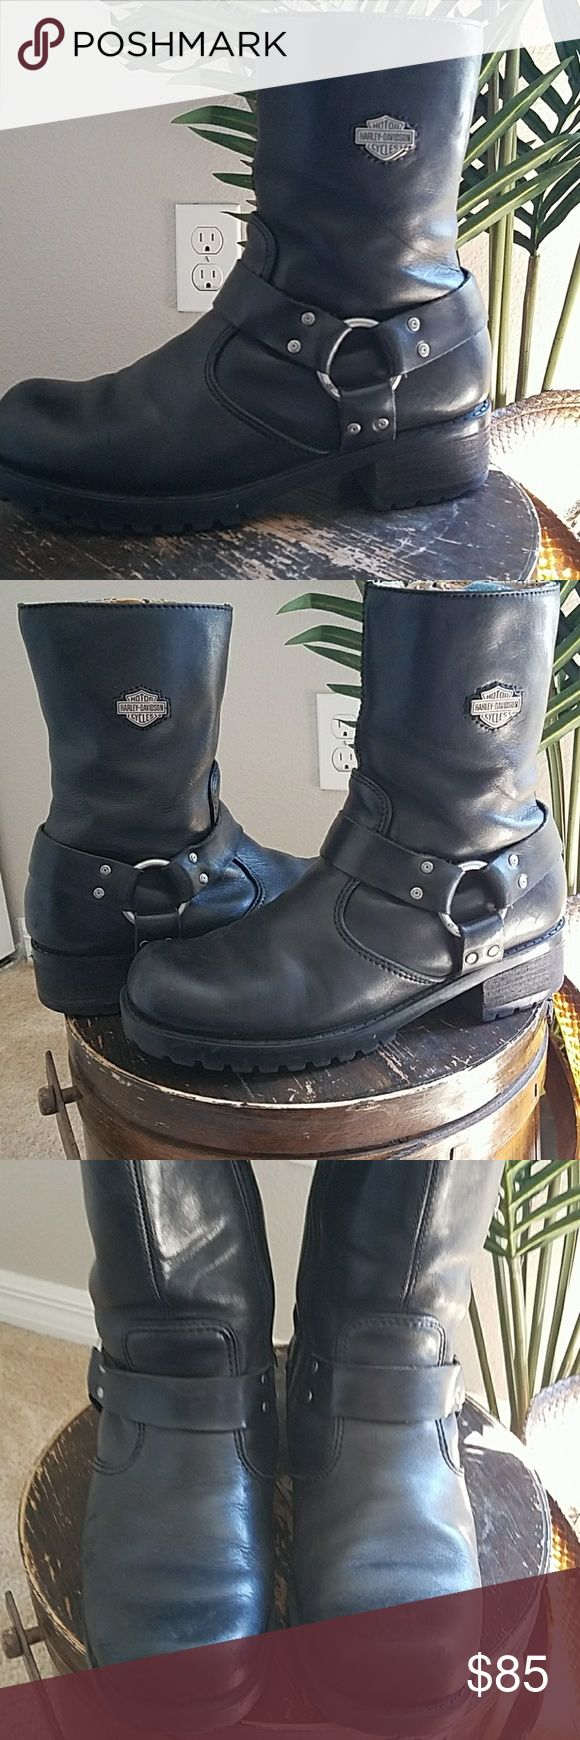 Harley Davidson boots Worn in just right! Perfect women's biker boot. 2Chillies Shoes